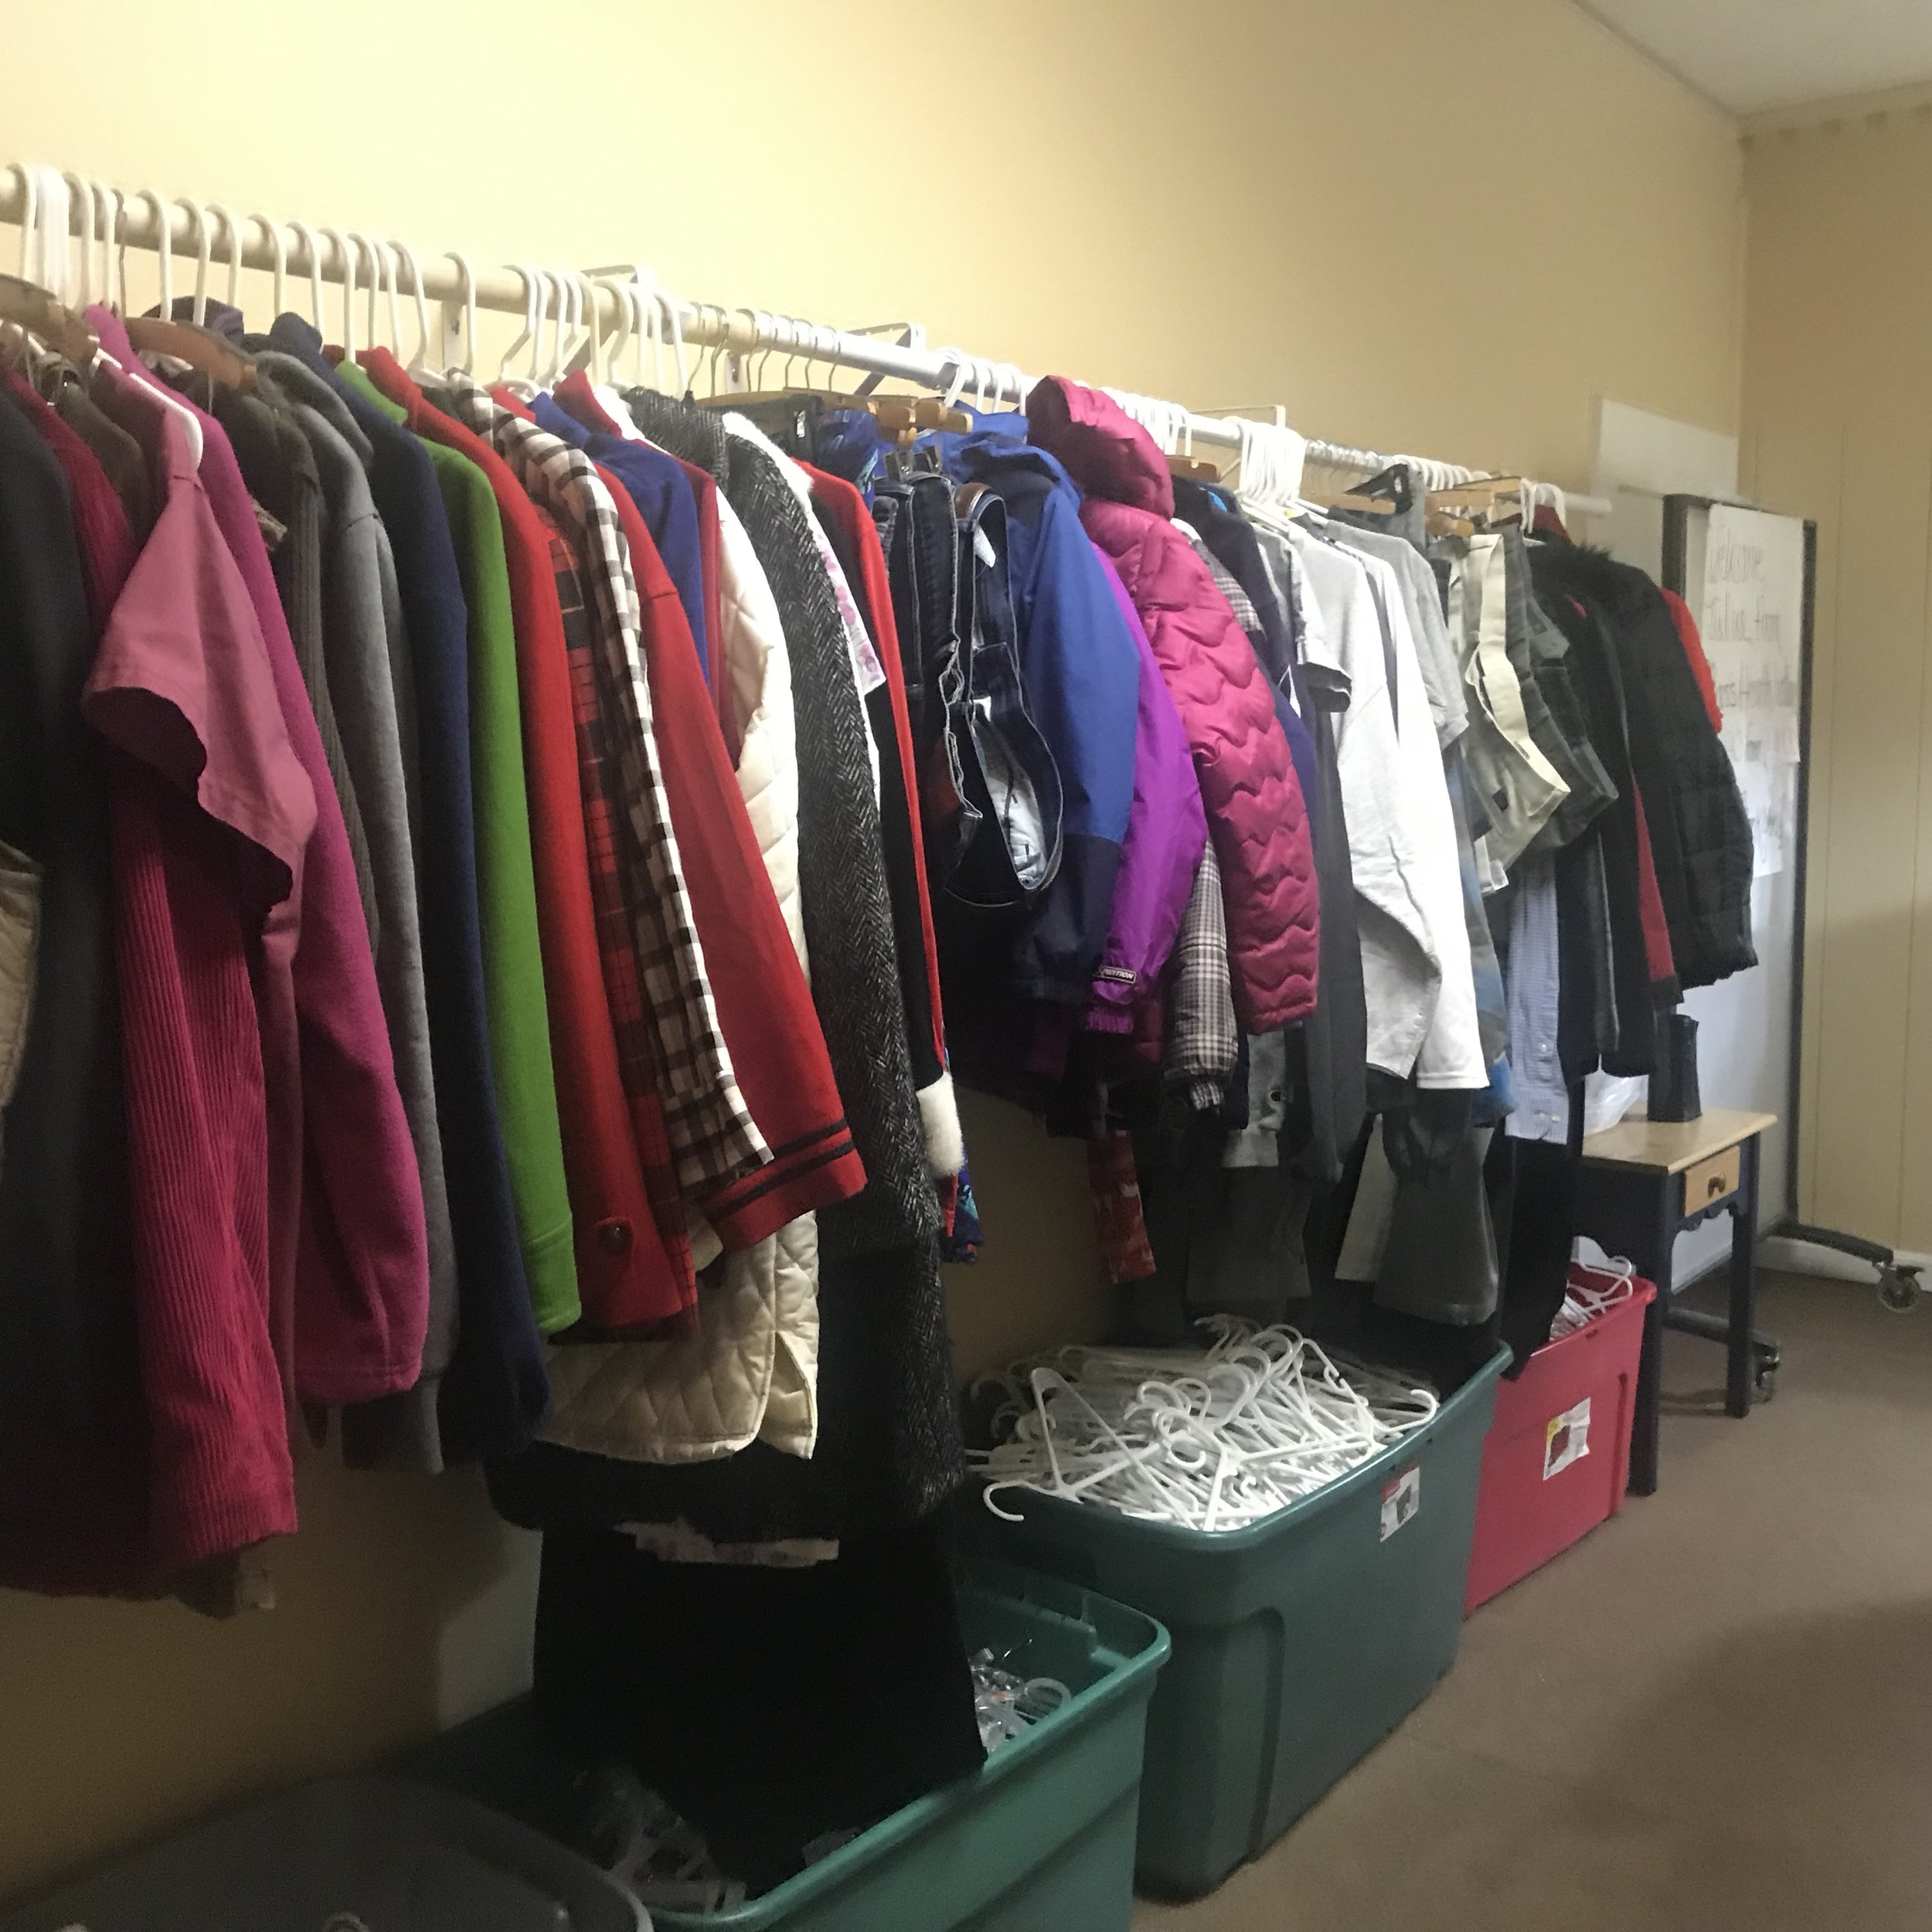 Warm staples are a huge help to the community in need.